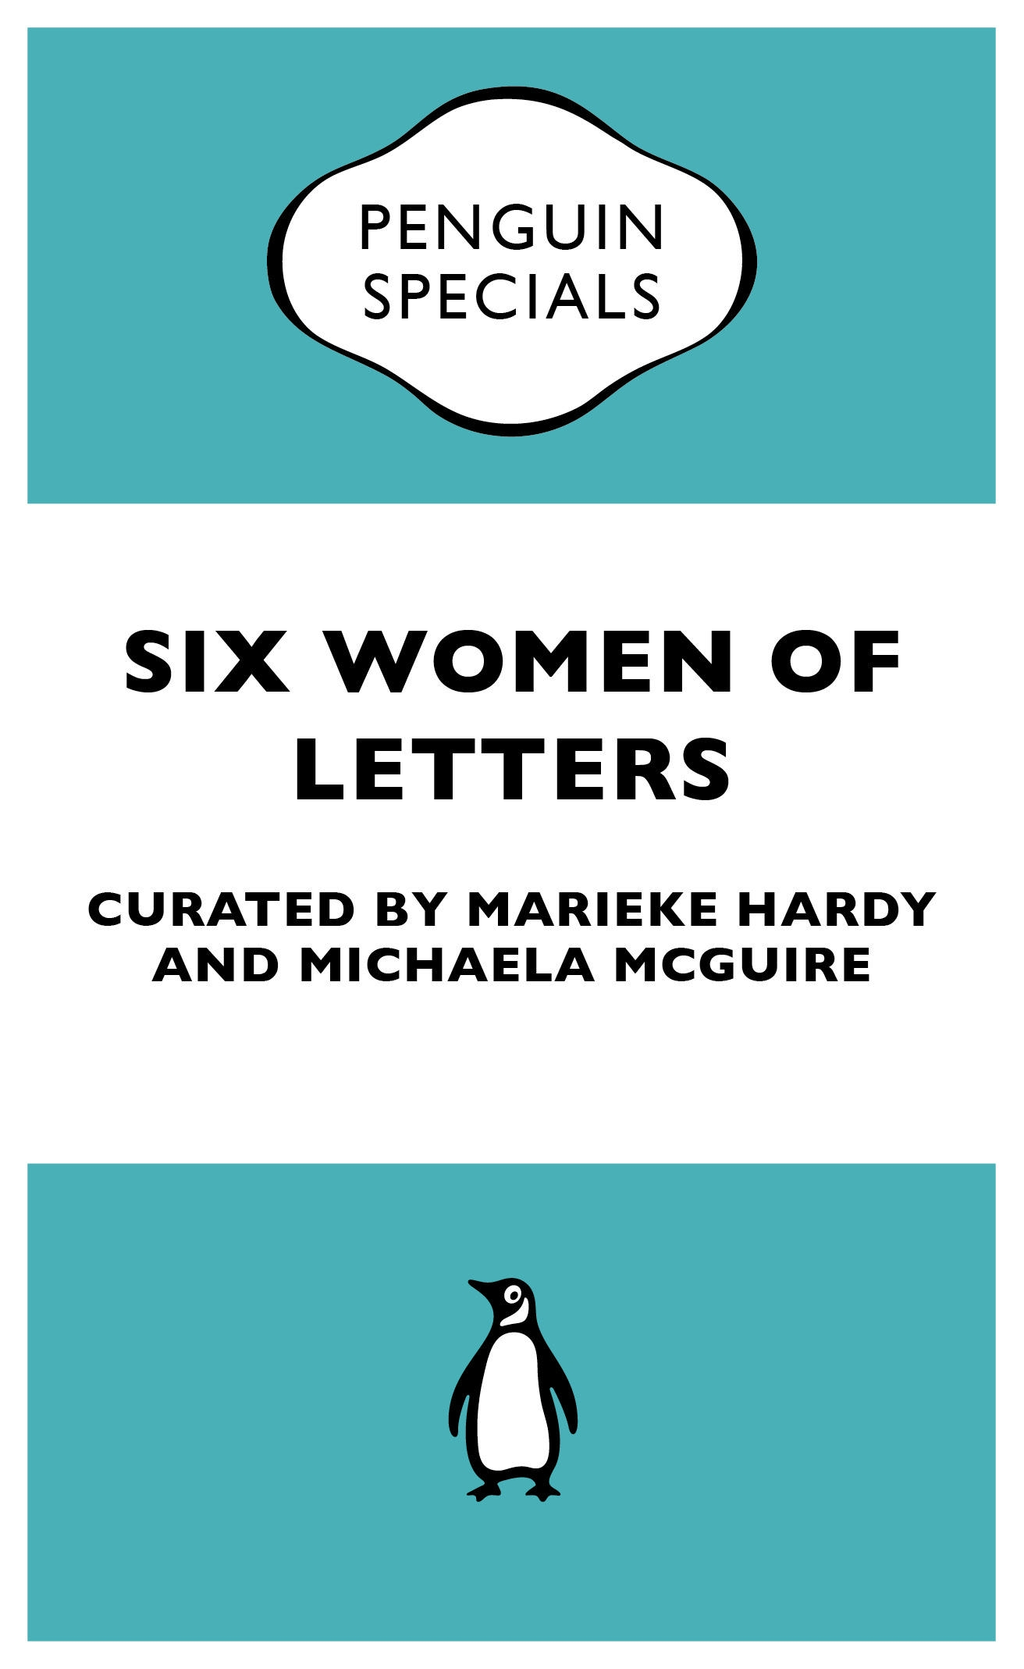 Six Women of Letters: Penguin Specials